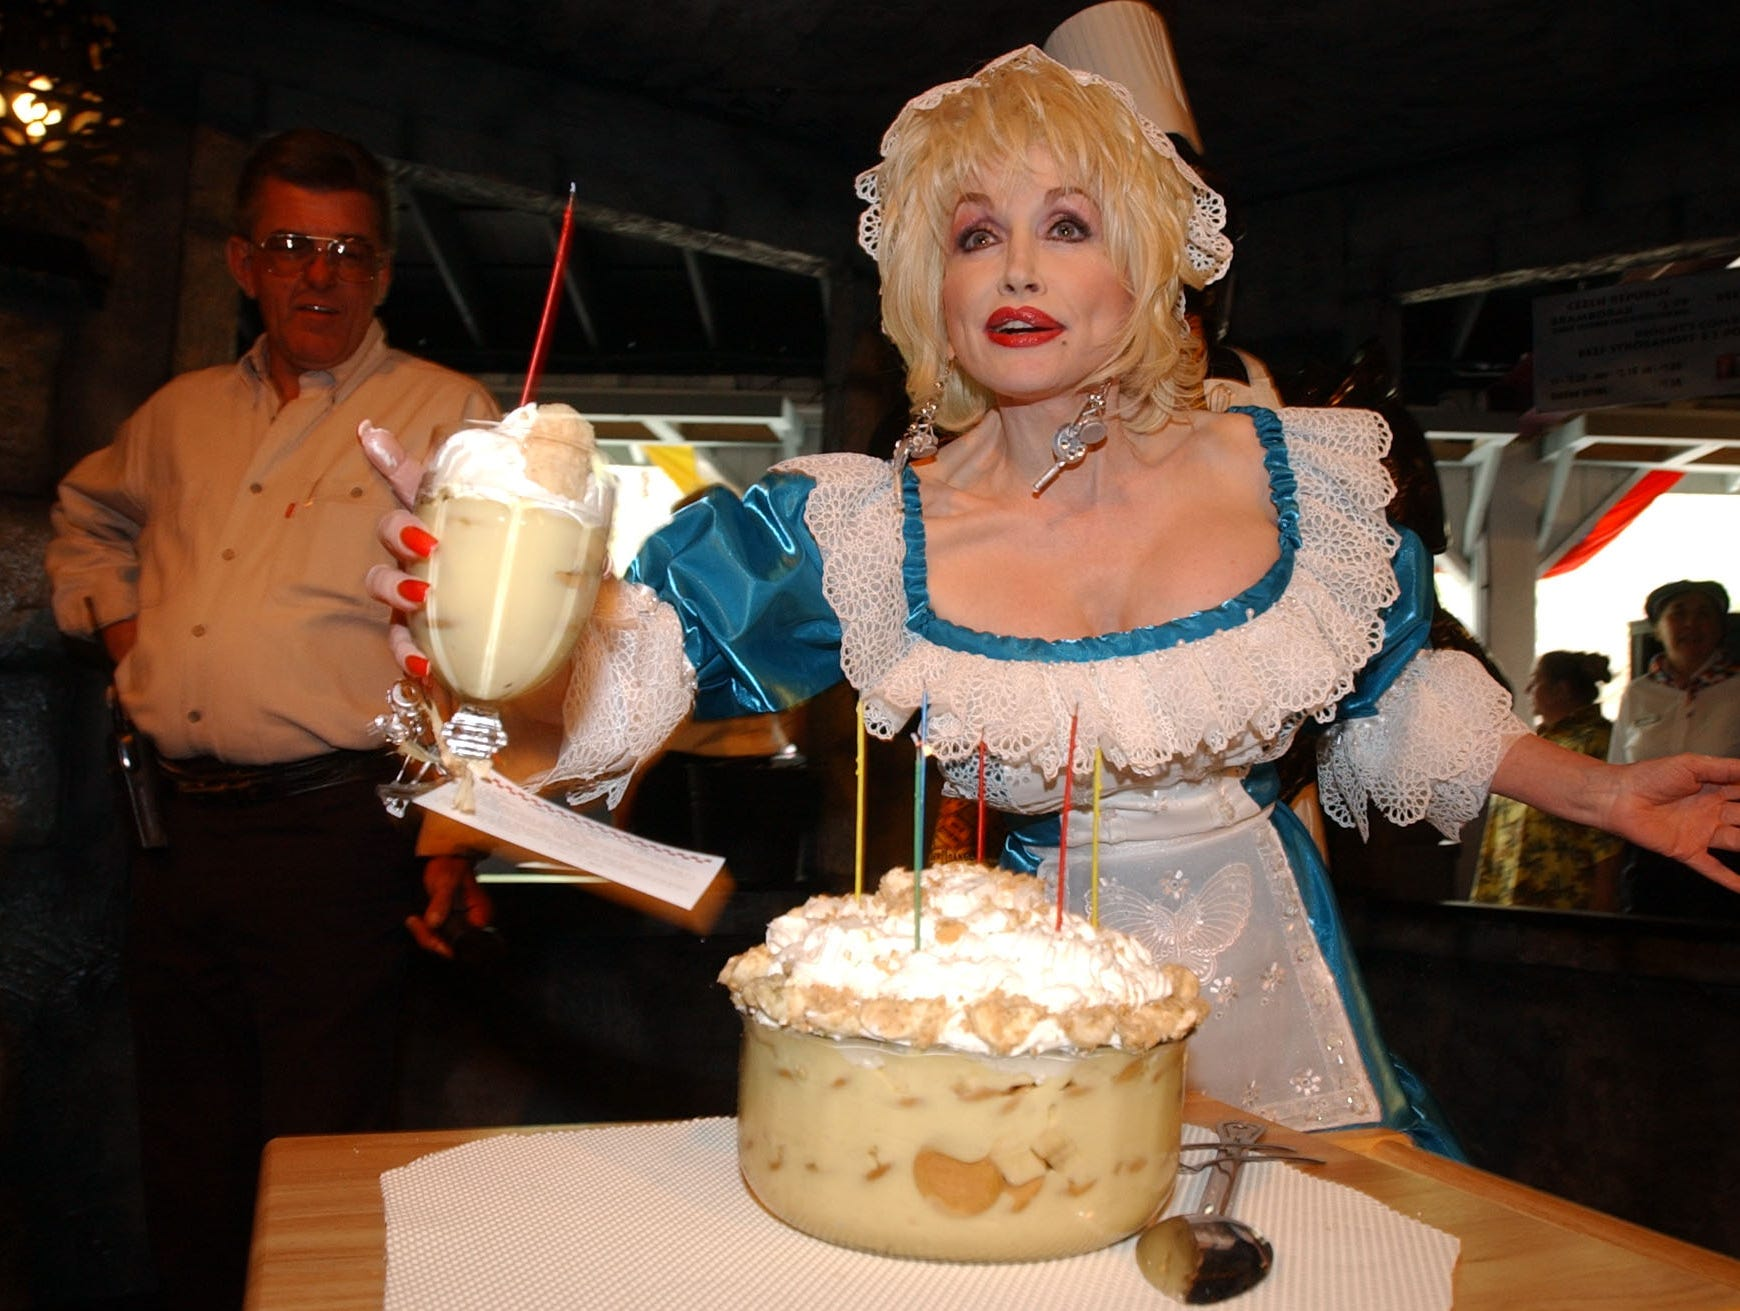 Dolly Parton serves dessert to reporters during media day at Dollywood Friday.  Dolly was announcing the opening of her Festival of Nations which opens Saturday, April 5, 2003